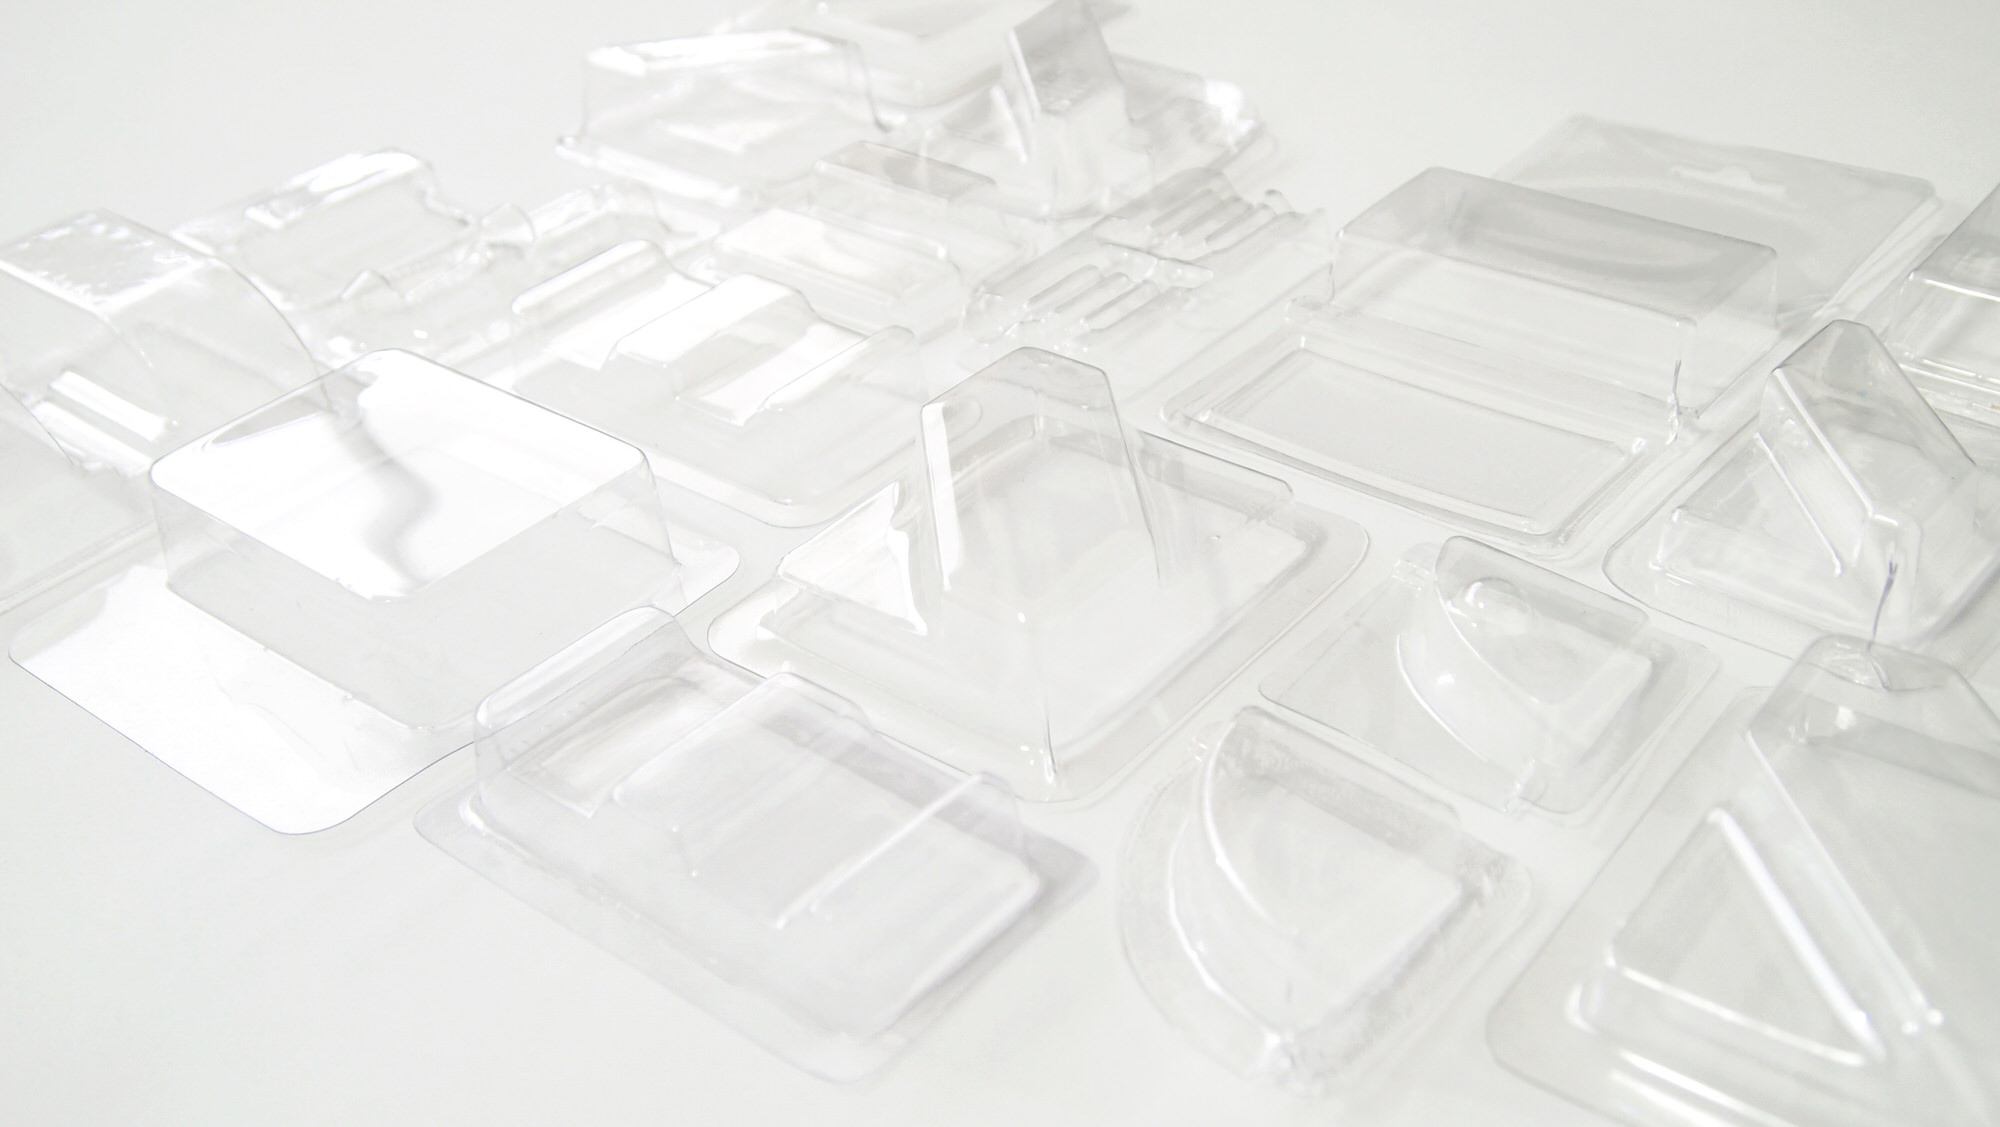 Blister packaging example using vacuum forming machine the FormBox